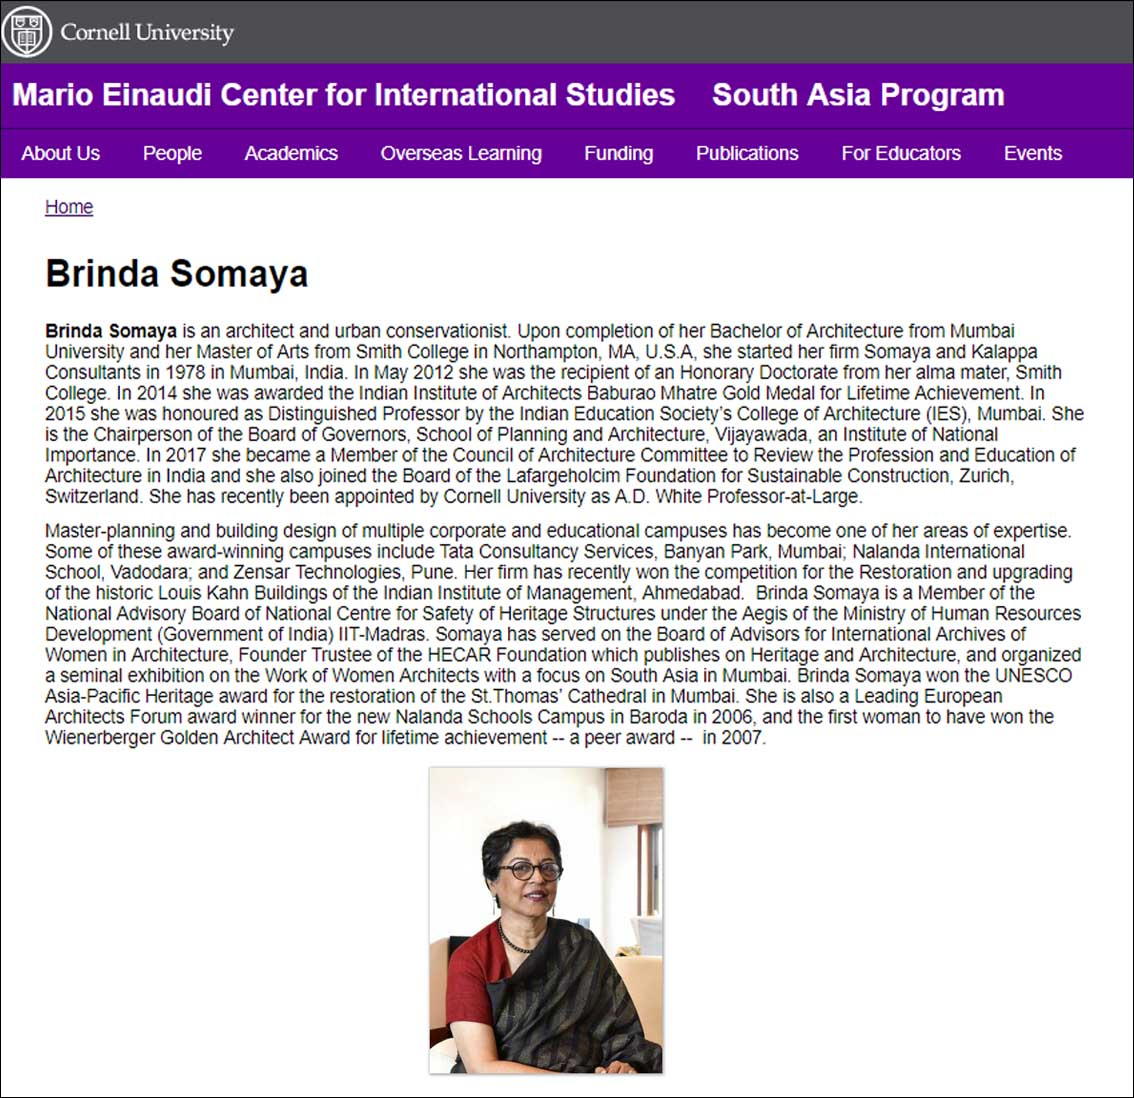 Brinda Somaya won the UNESCO Asia-Pacific Heritage award for the restoration of the St.Thomas� Cathedral in Mumbai, Cornell University - 2004